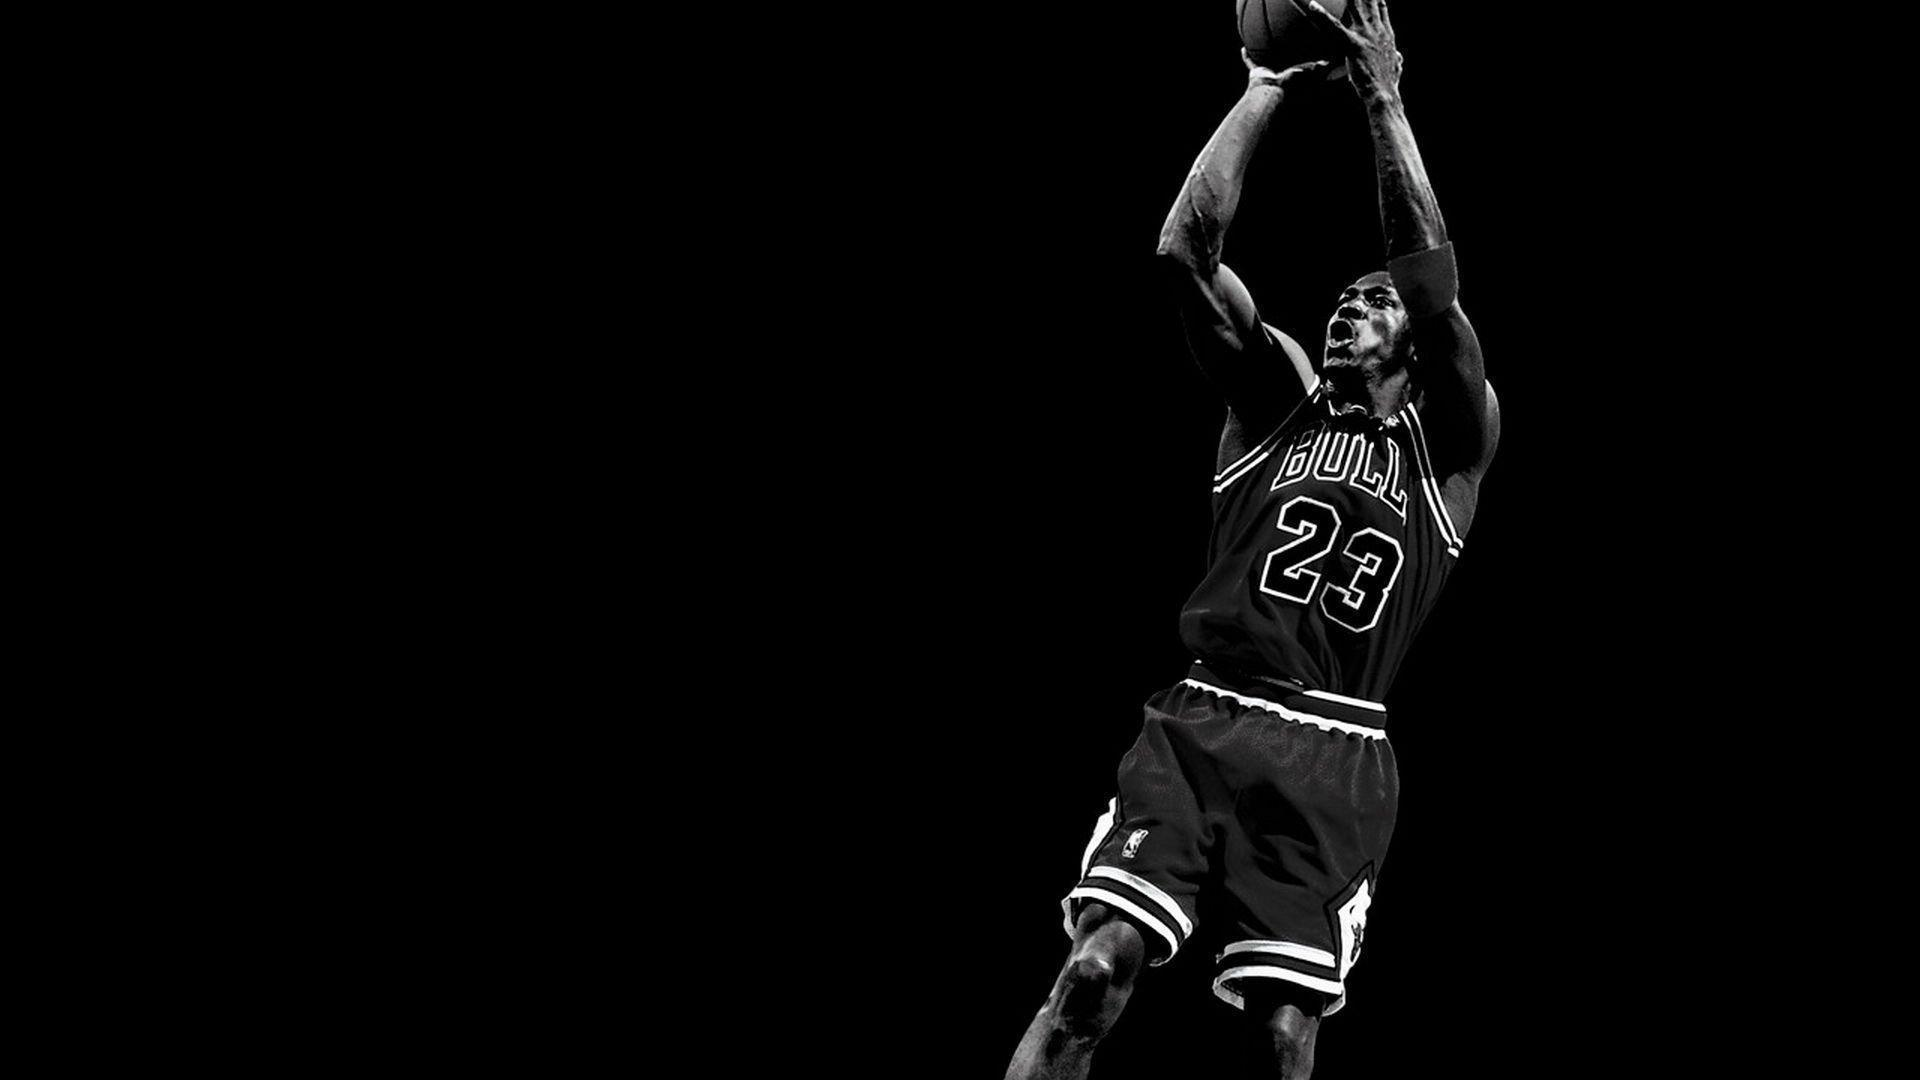 Wallpaper iphone jordan - Mihael Jordan Wallpapers Hd Desktop 9 Hd Wallpapers Hdimges